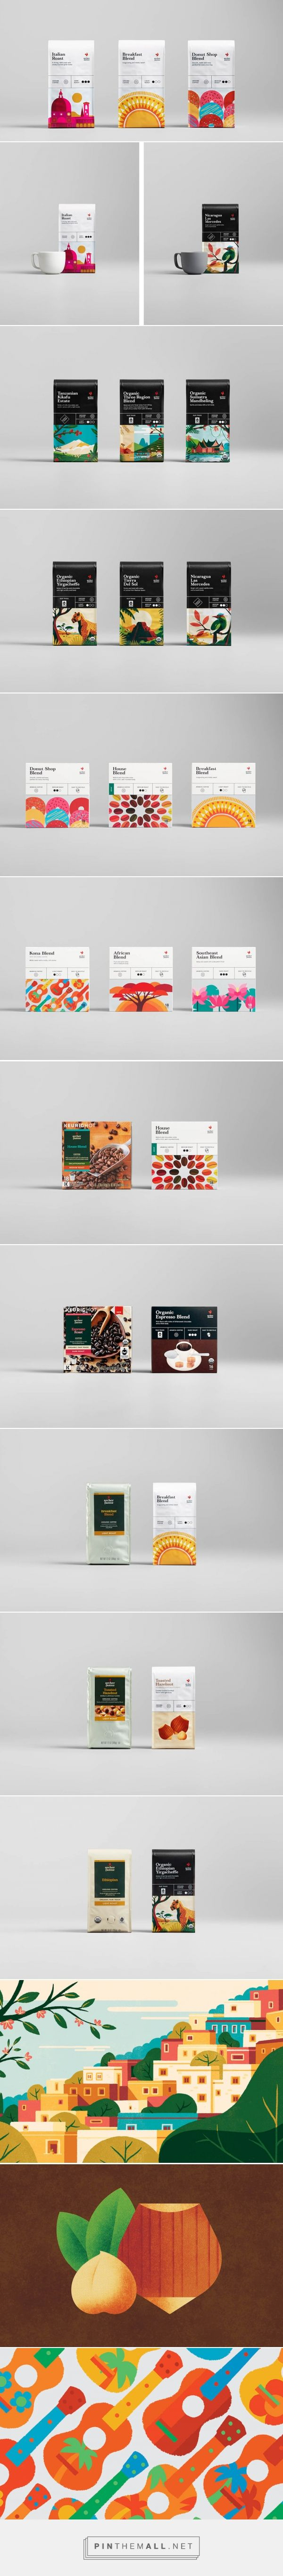 Target's Archer Farms Redesign / coffee packaging / designed by Target Creative Team & Collins